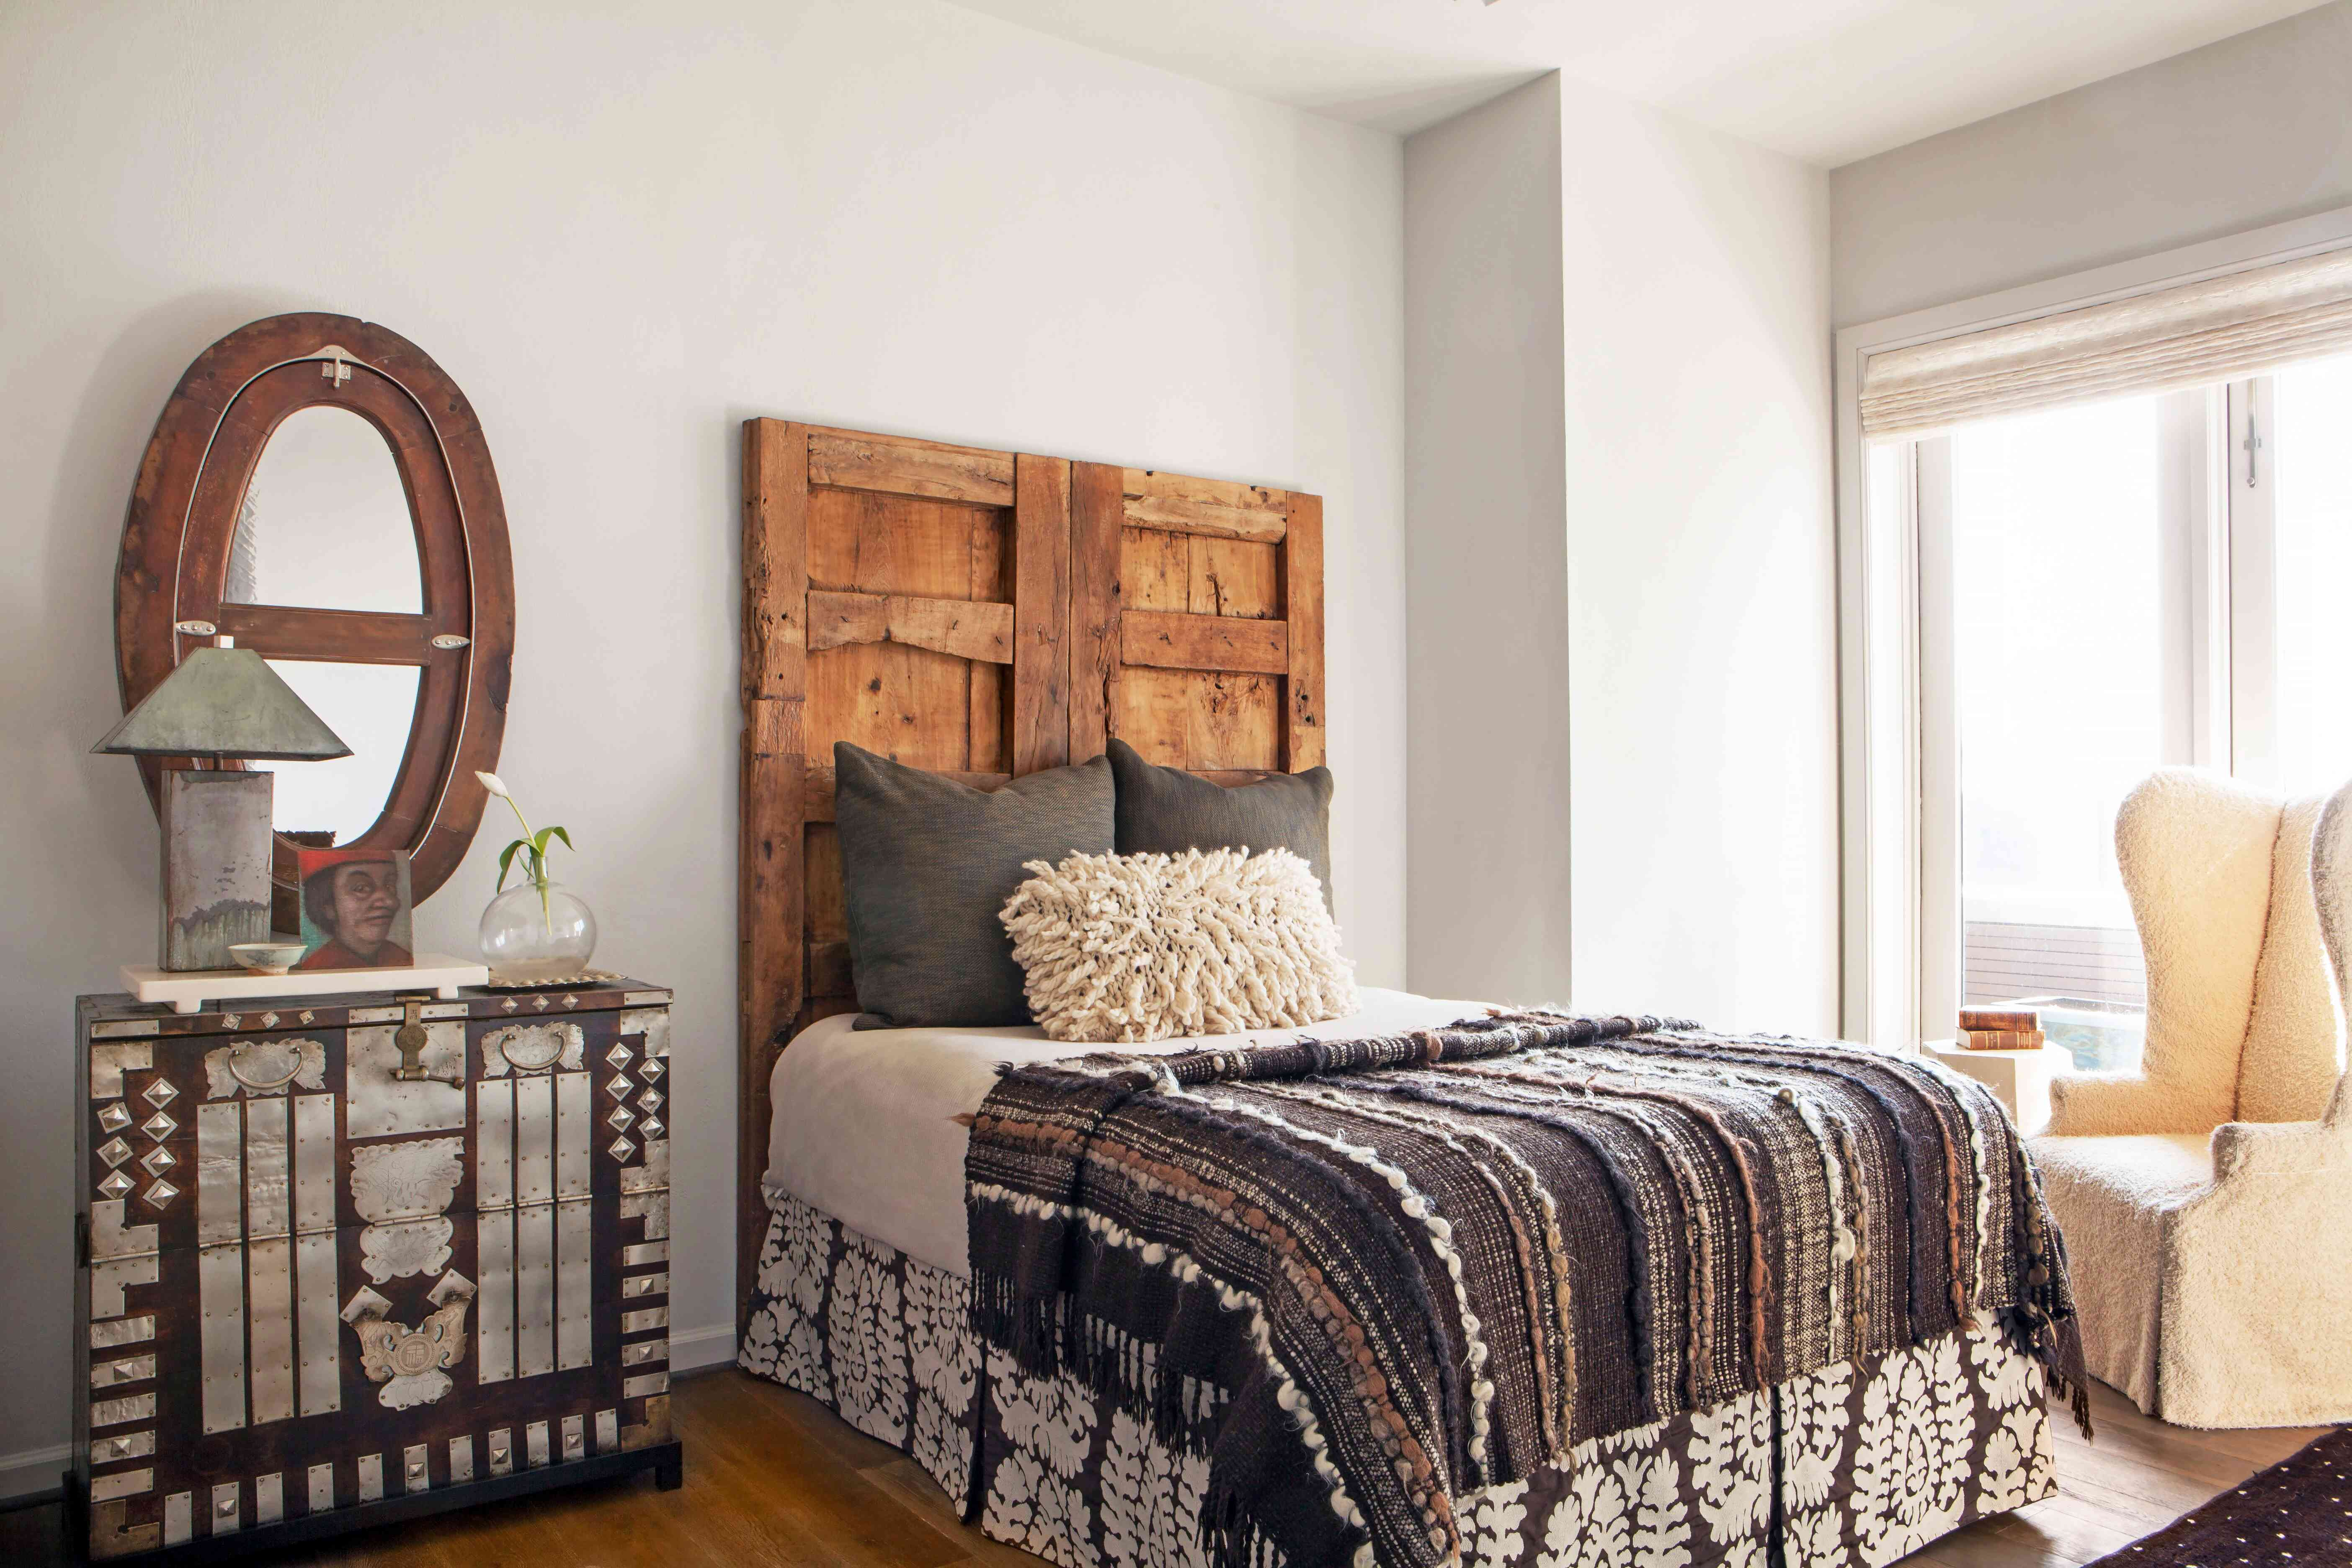 An eclectic bedroom that showcases an ideal juxtaposition of textures.